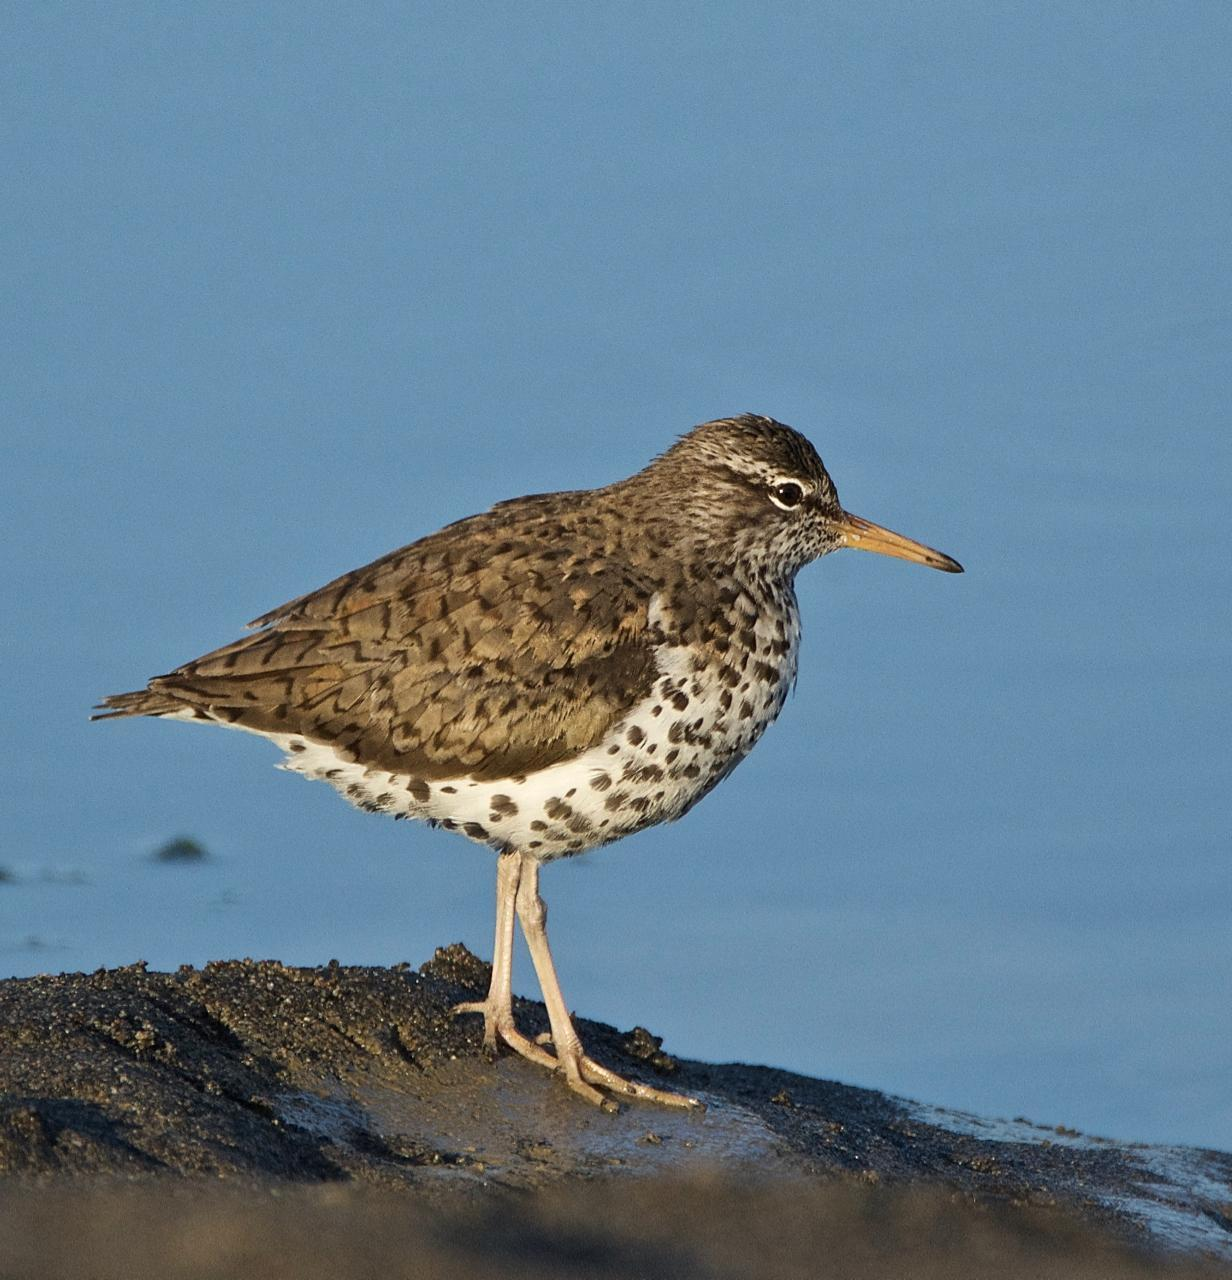 Spotted Sandpiper Photo by Brian Avent